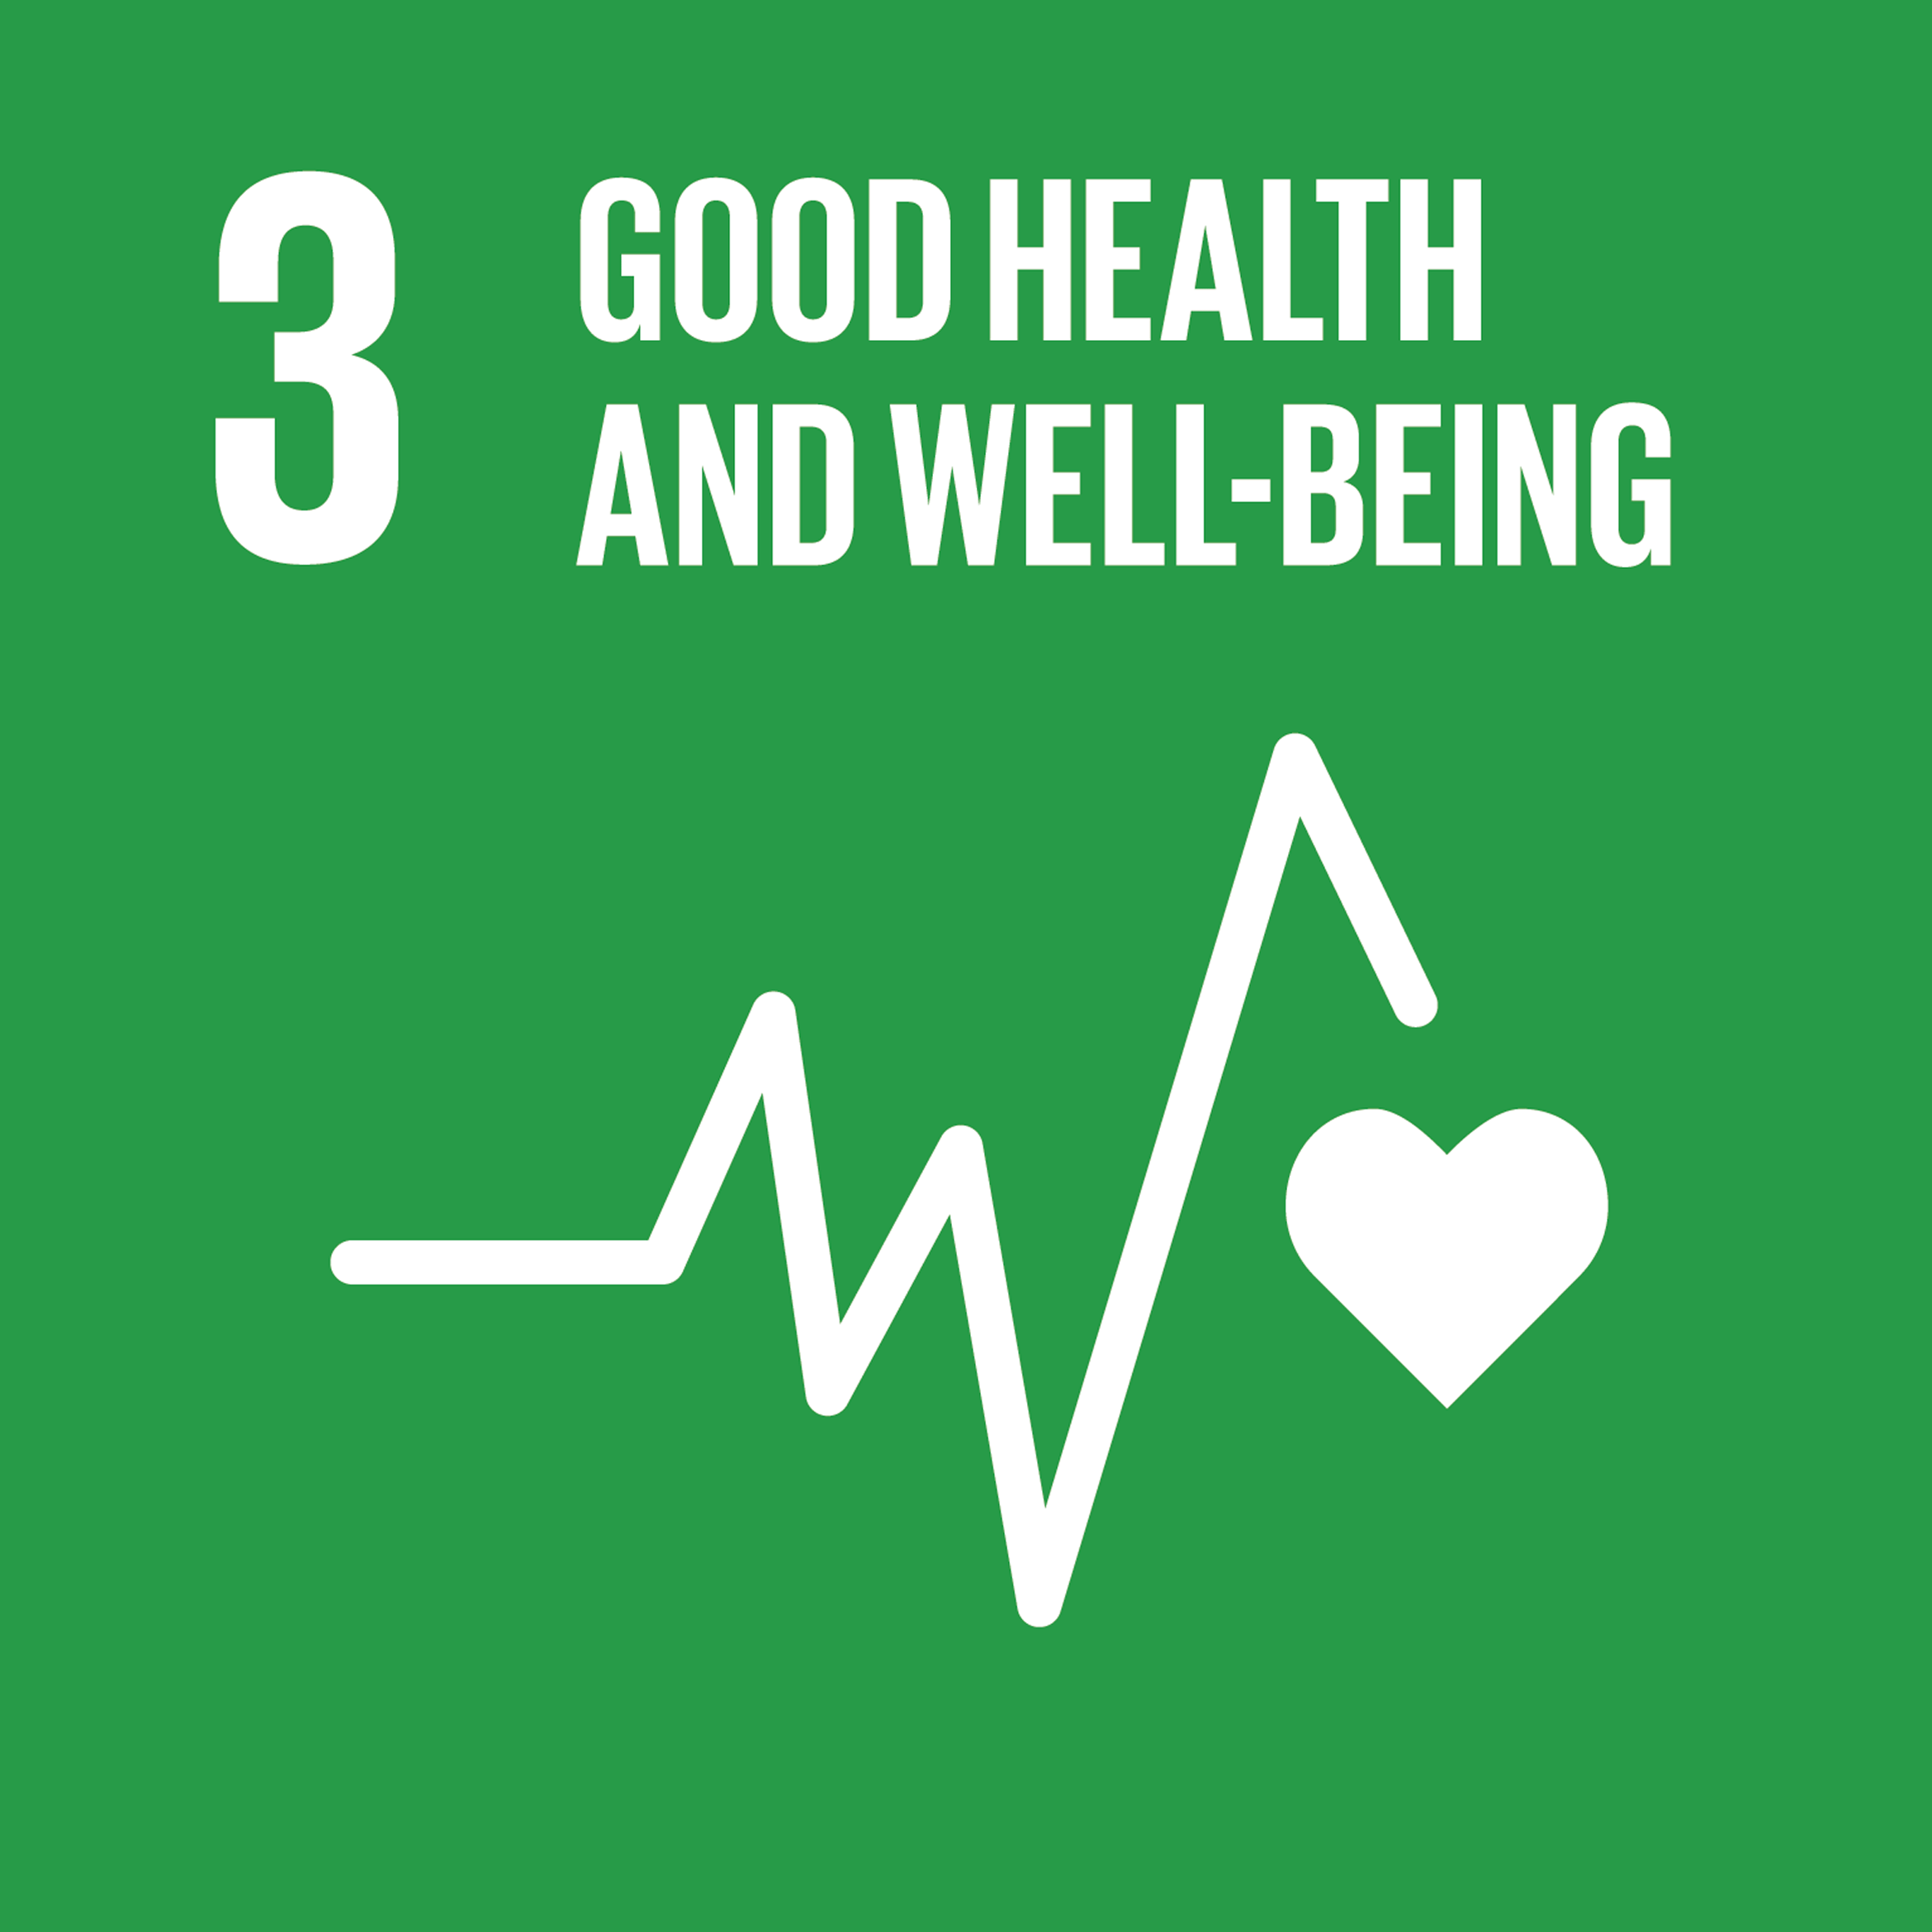 SDG-good-health-wellbeing